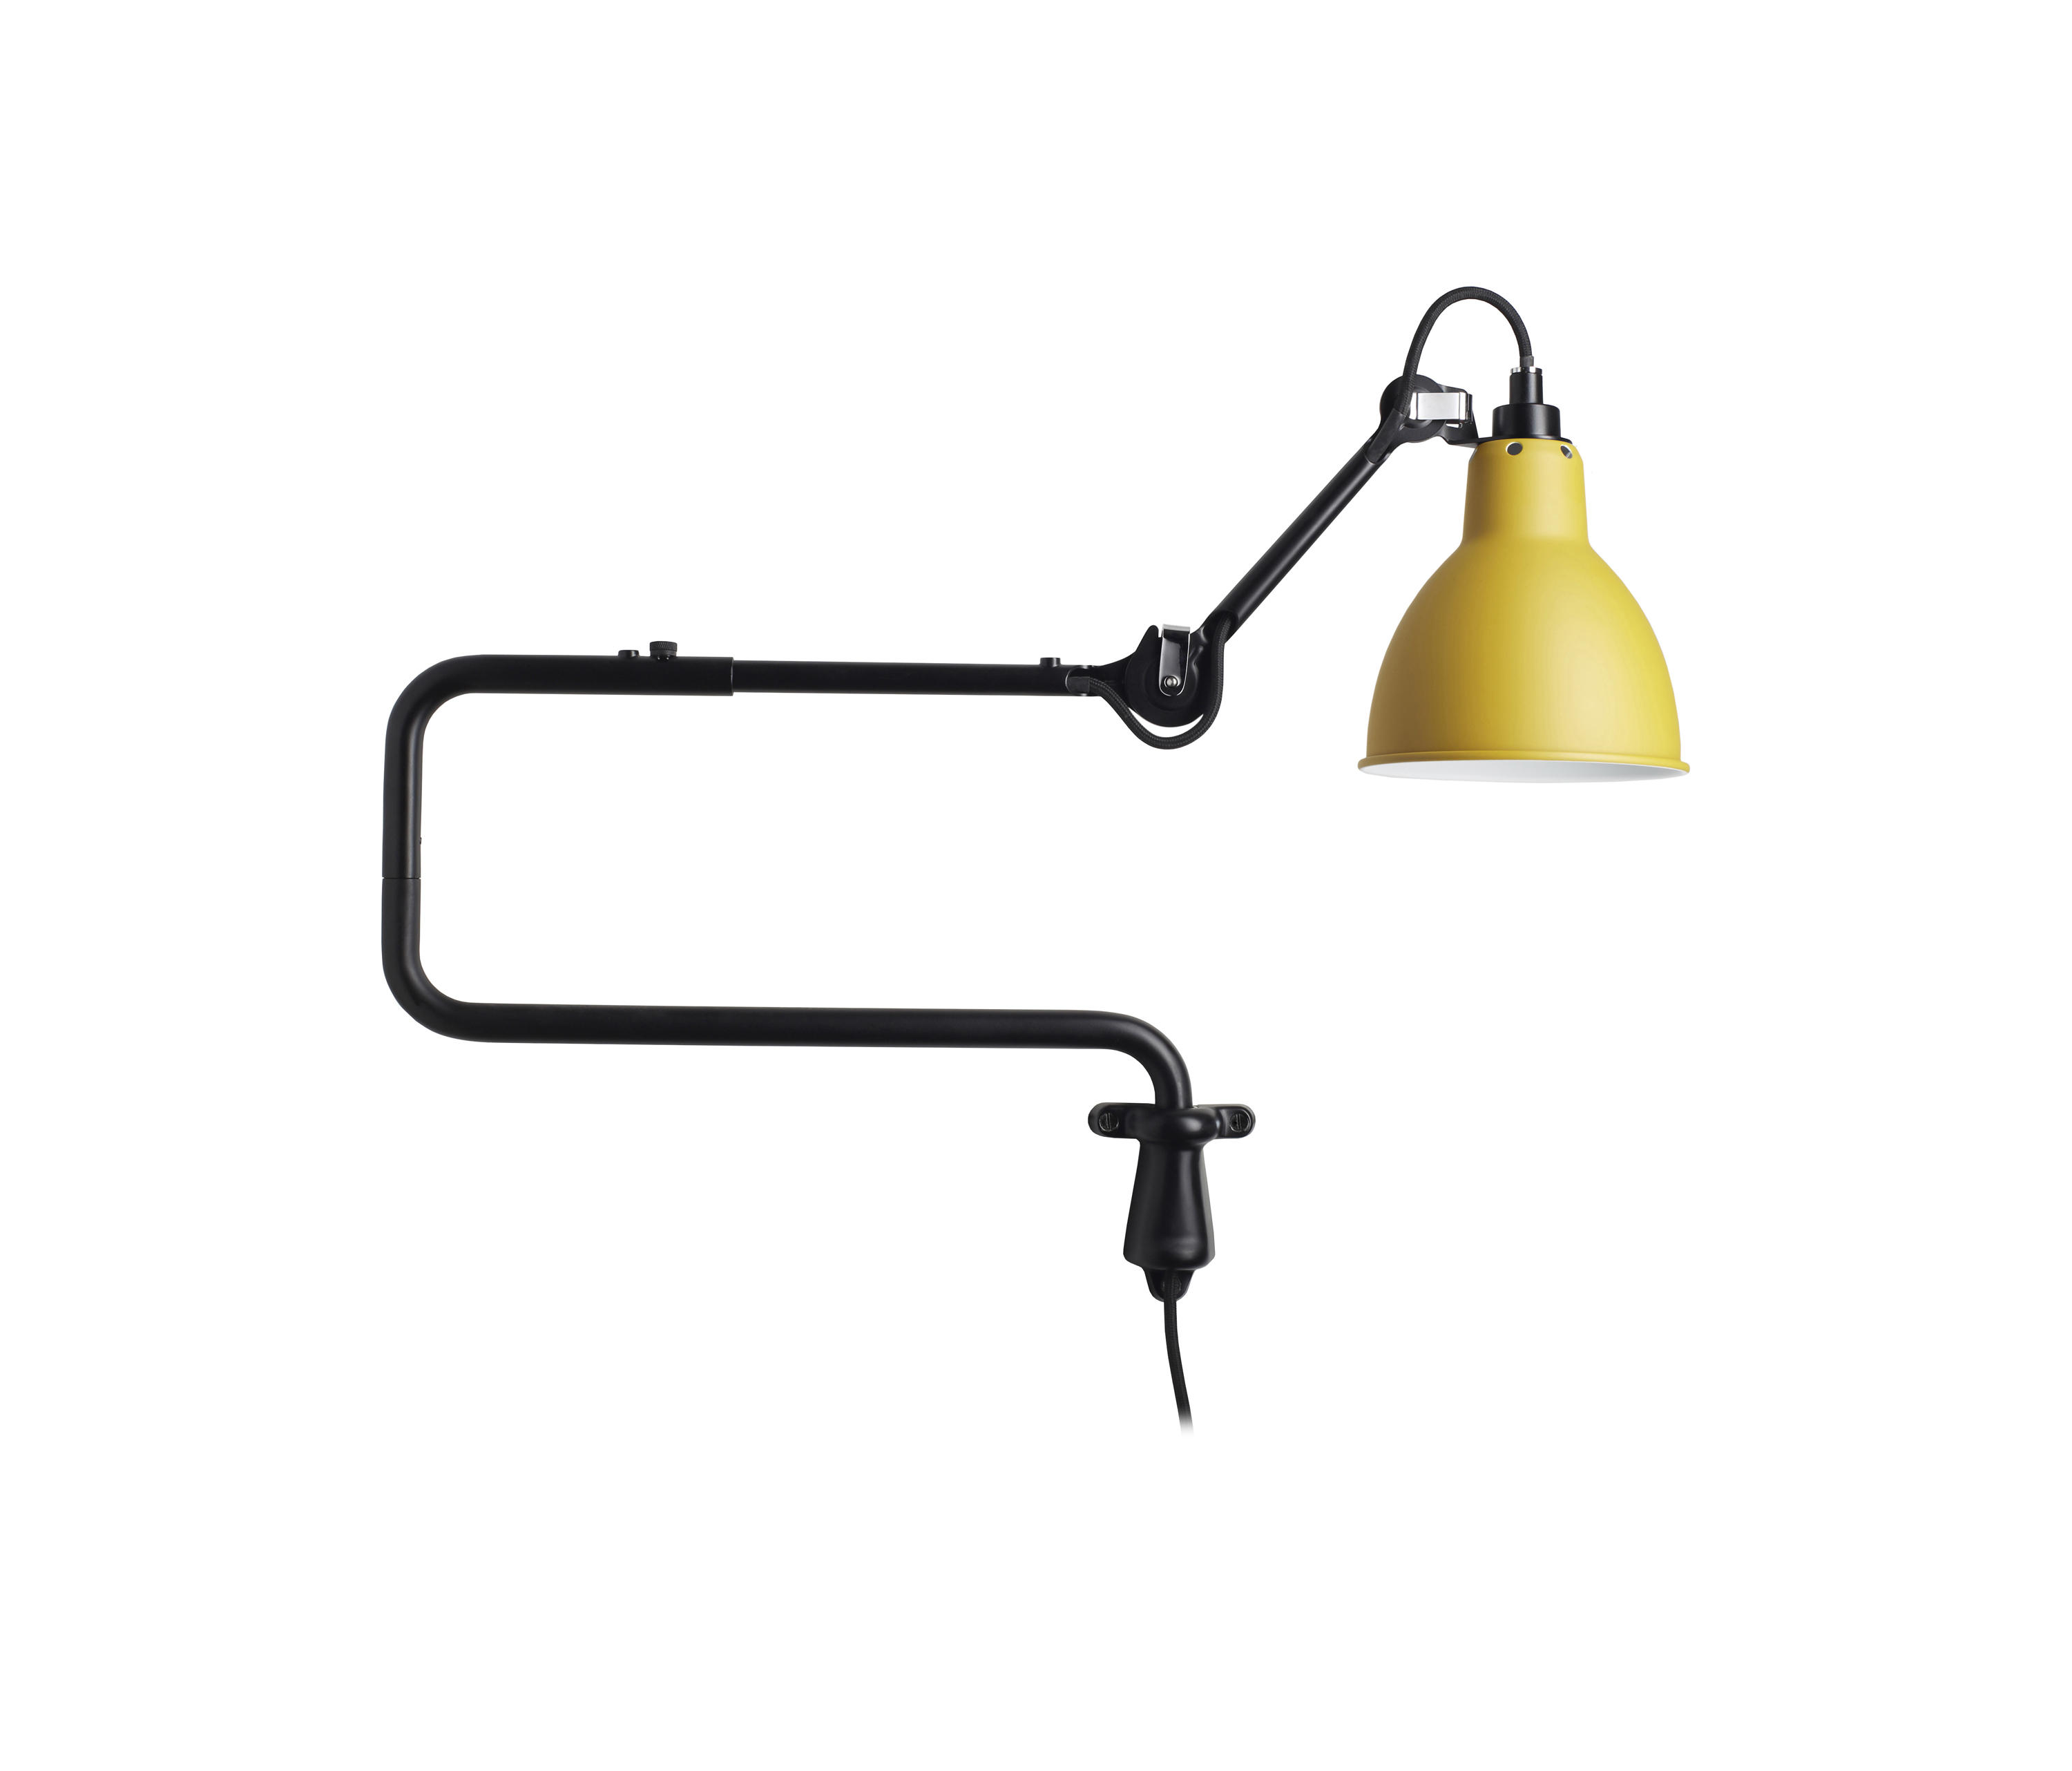 lampe gras n 303 yellow iluminaci n general de dcw ditions architonic. Black Bedroom Furniture Sets. Home Design Ideas